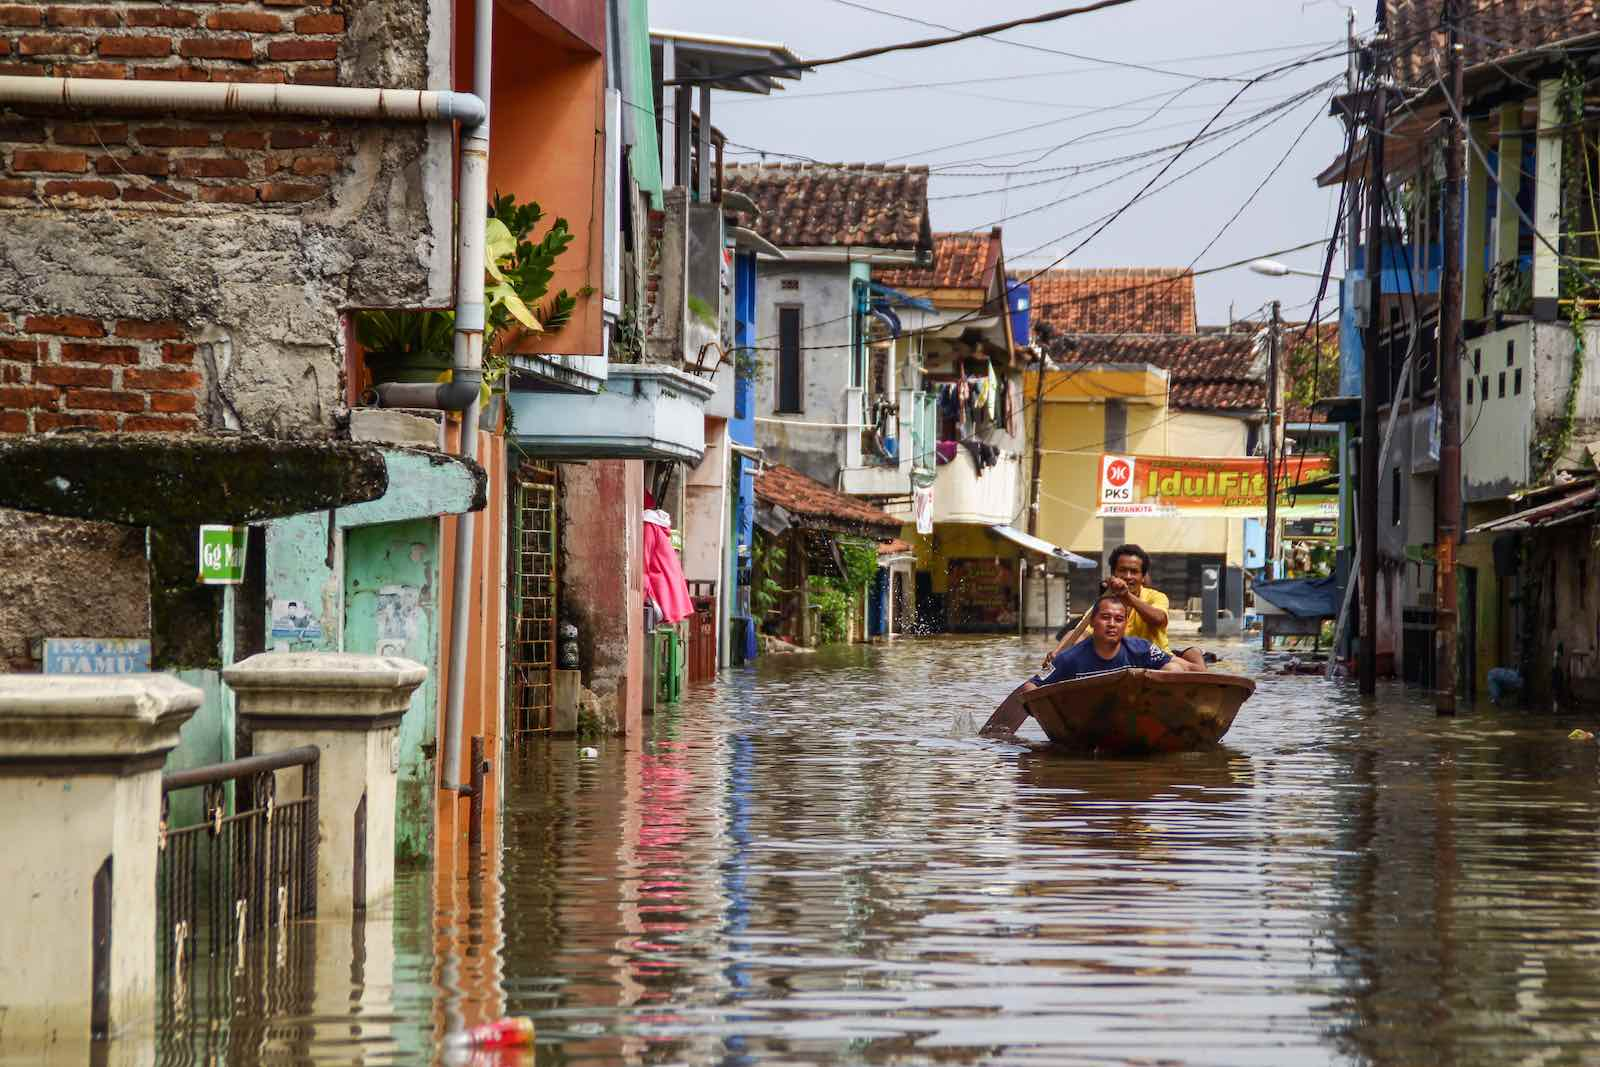 Flooding in Indonesia's Bandung district from overflow of the Citarum River, which displaced nearly 60,000 people, 24 May 2021 (Algi Febri Sugita/NurPhoto via Getty Images)